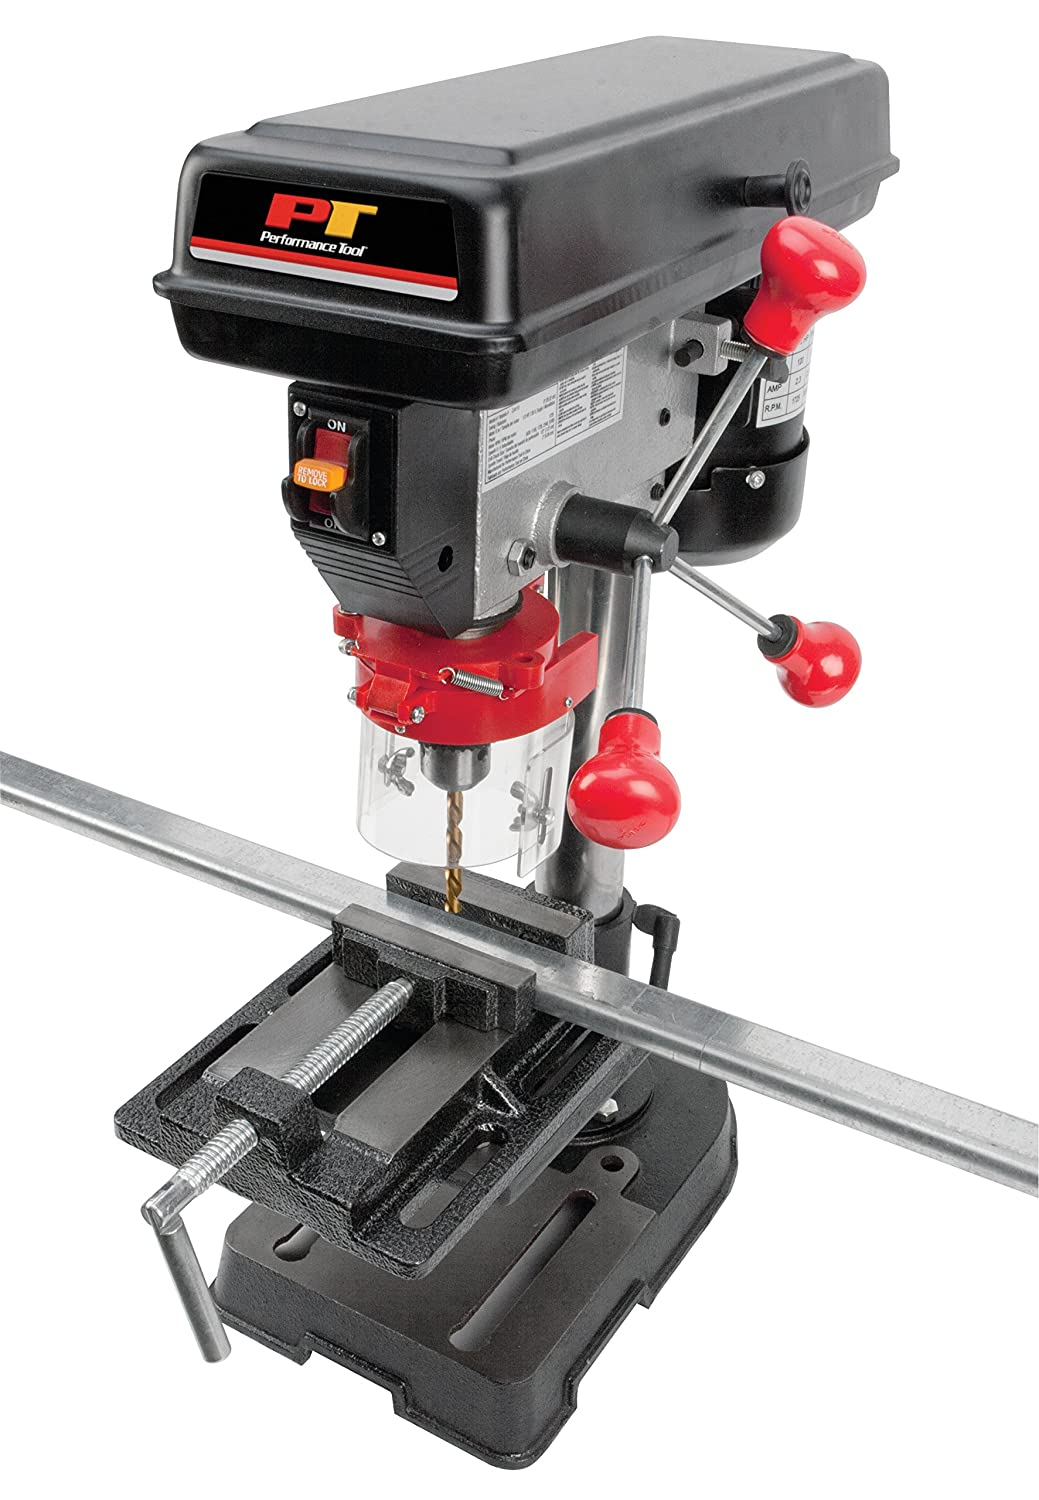 Performance Tool W50005 5 Speed 1//3-HP Bench Top Drill Press Weiss Tool Distributors PTW W50005